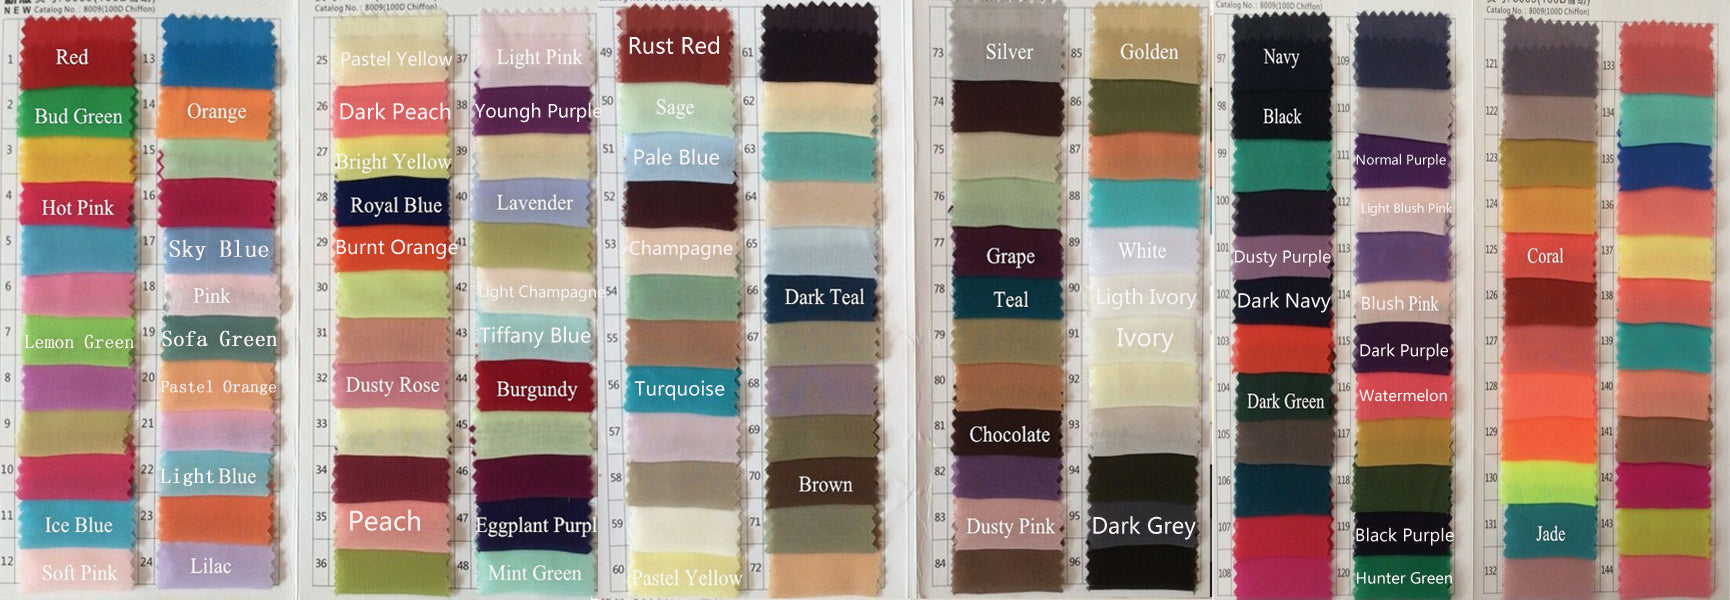 Fabric Swatches(fabrics are free, only need to buy it once)